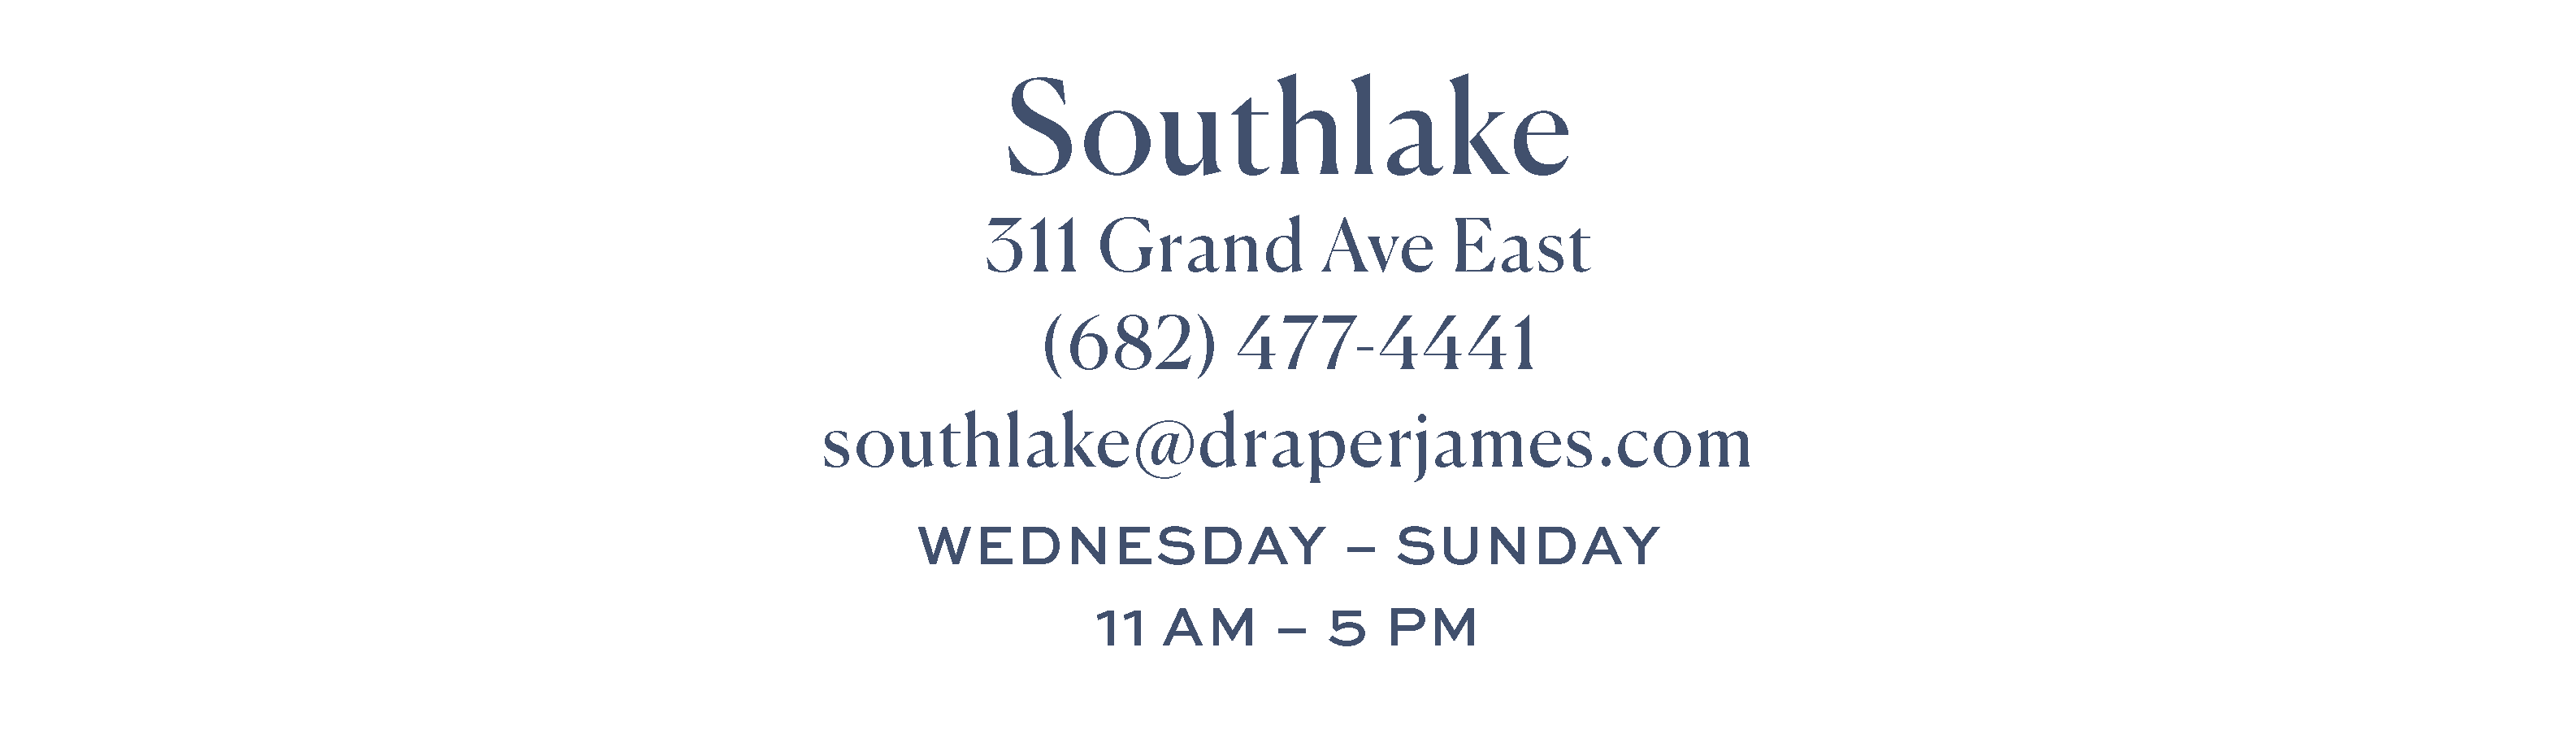 Southlake. Make an appointment. Closed July 4th. 311 Grand Ave E, Southlake, TX 76092. (682) 477-4441 southlake@draperjames.com Open 11am-5pm Wednesday-Sunday